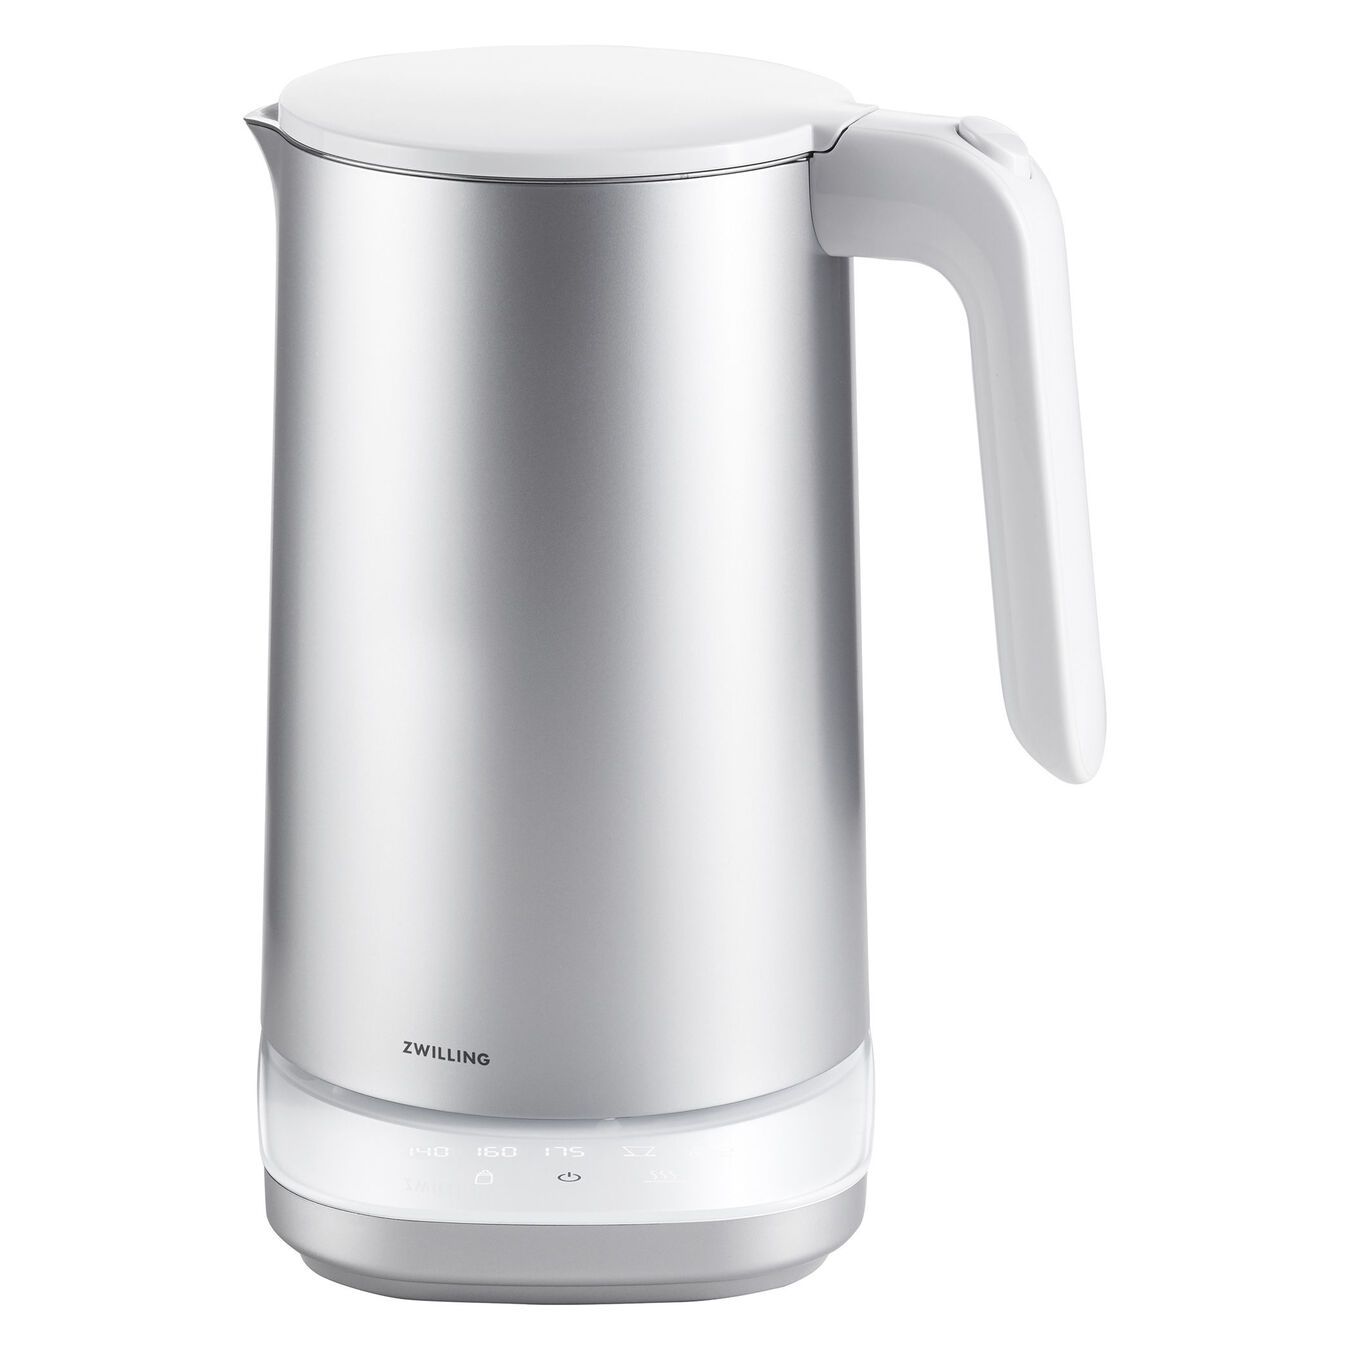 Cool Touch Kettle Pro,,large 2